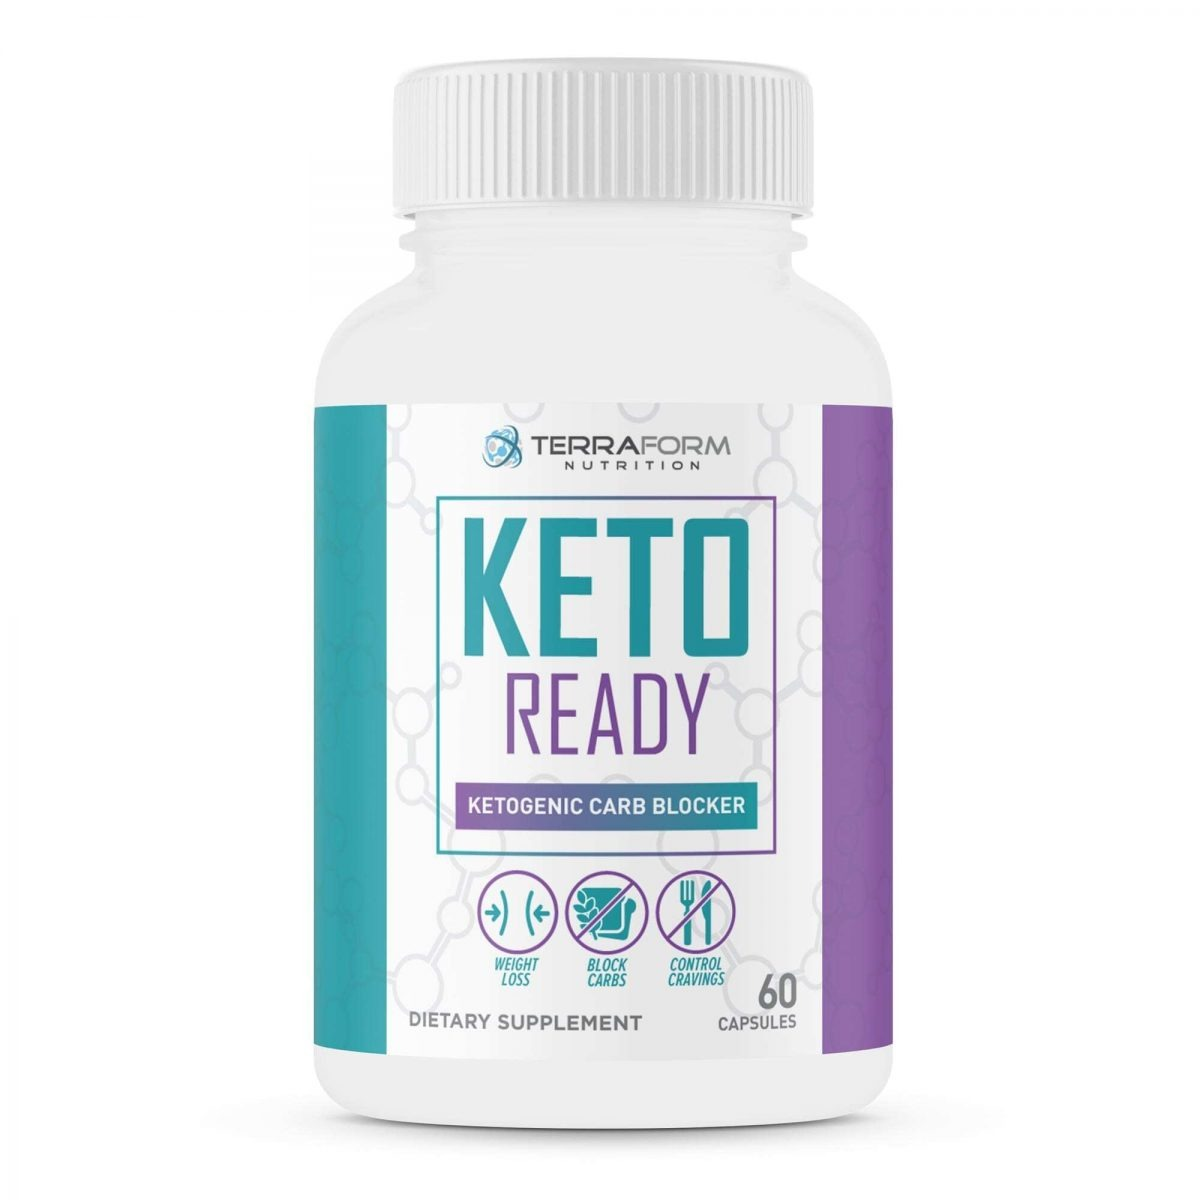 Keto Ready - Max Strength Keto Carb Blocker 1200mg – 60 Capsules - TerraForm Nutrition-3320